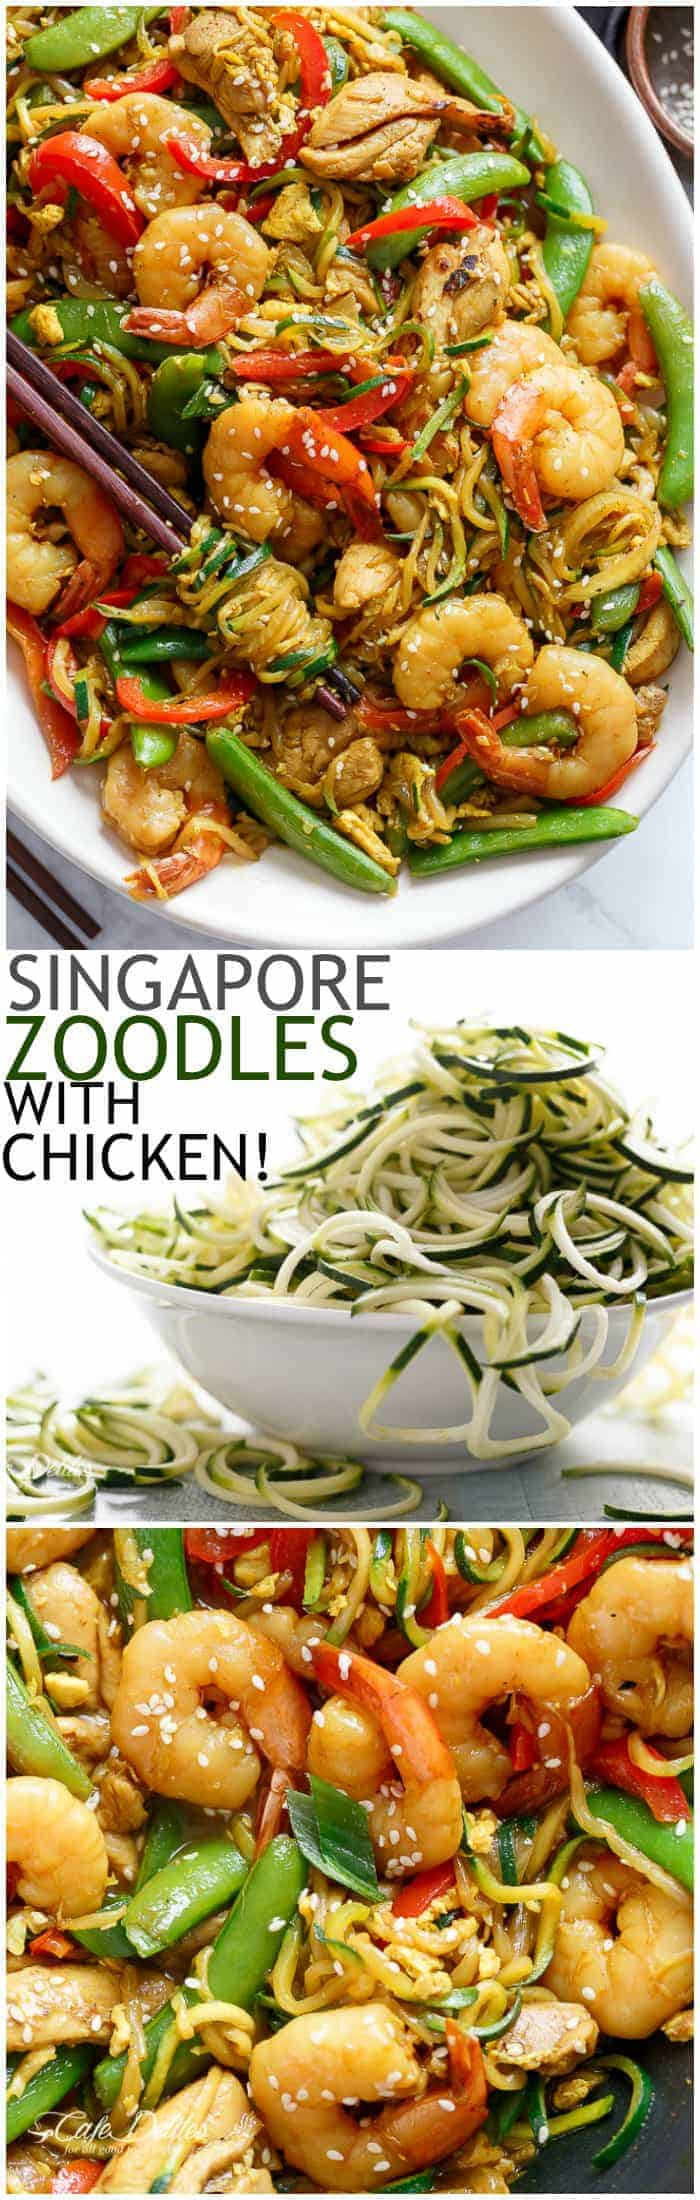 A twist on the classic Singapore Noodles -- same classic flavours only low carb and low calories with Zoodles! | https://cafedelites.com